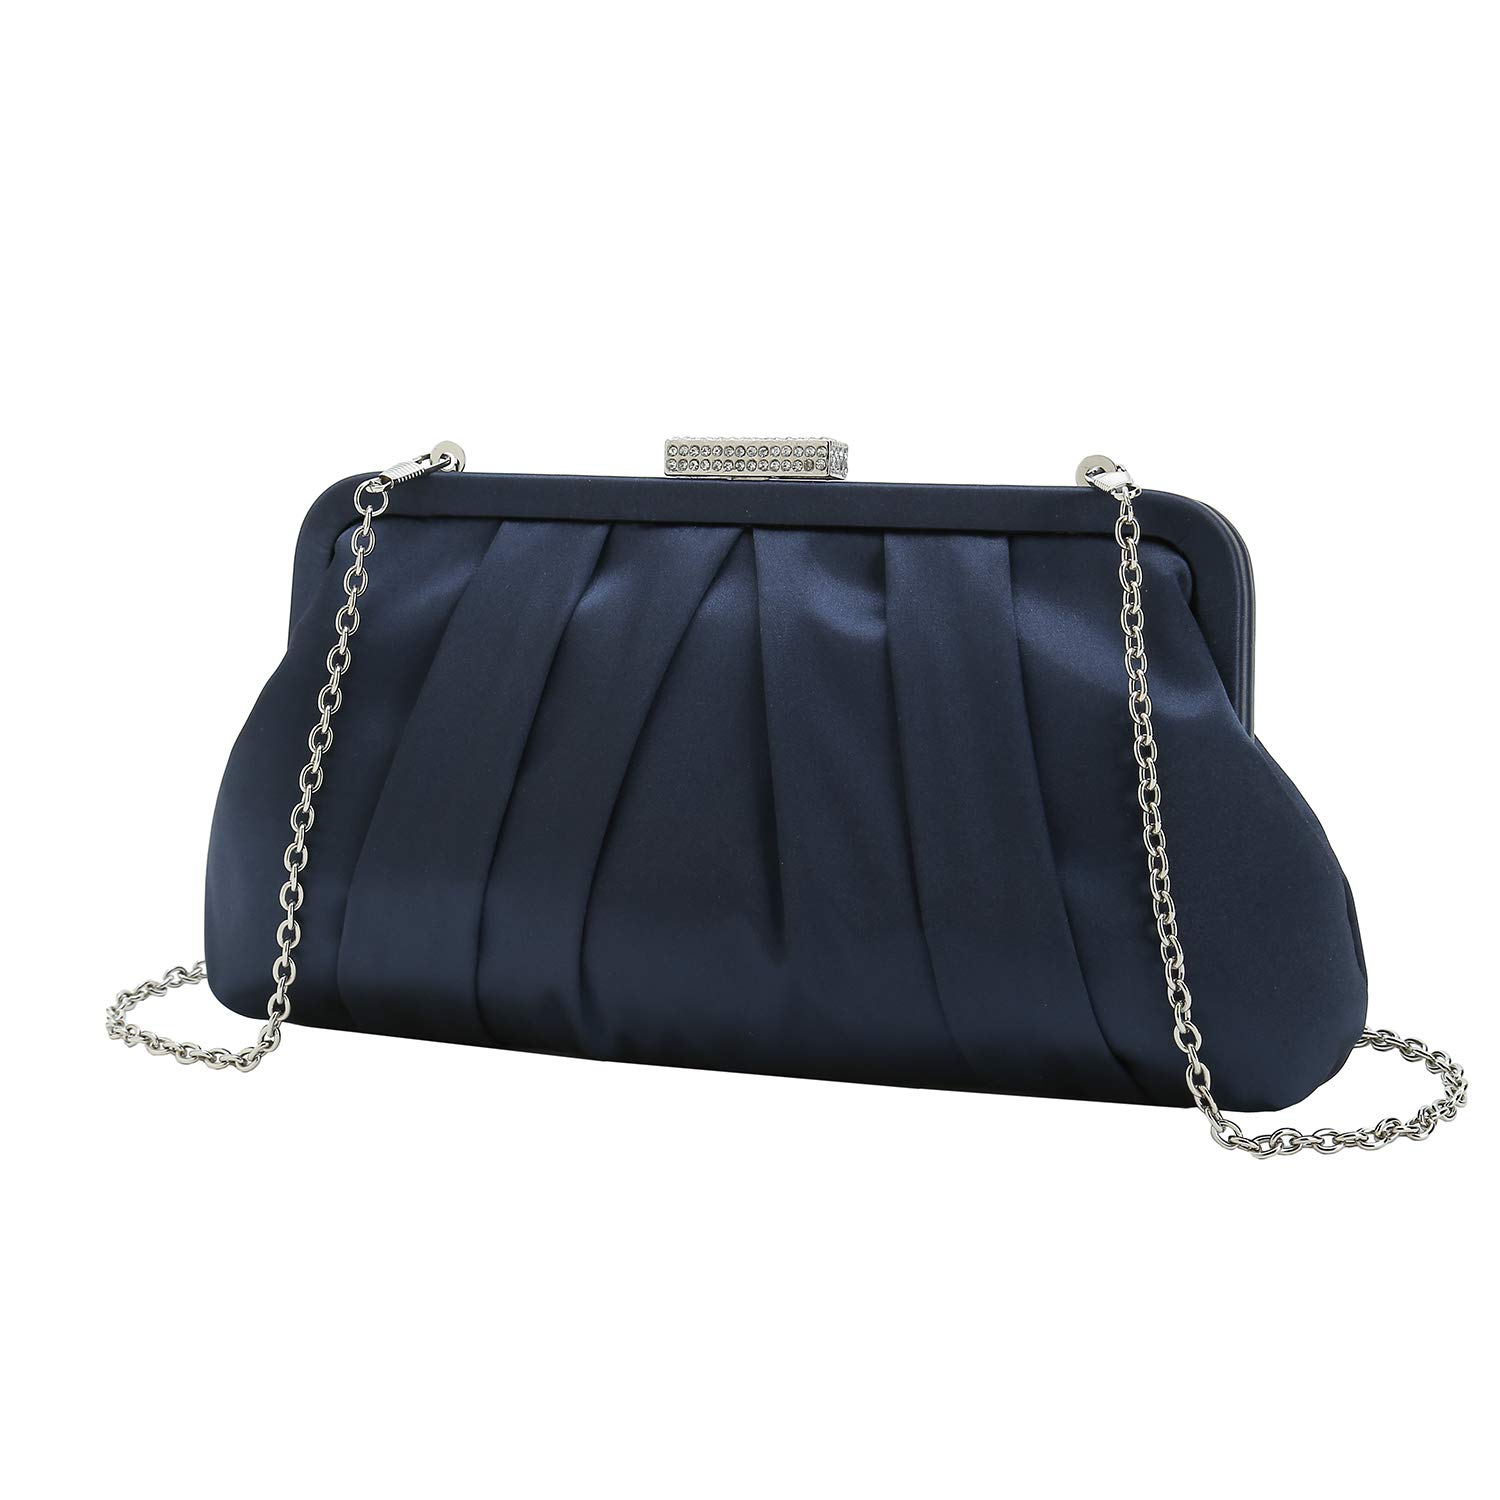 Charming Tailor Classic Pleated Satin Clutch Bag Diamante Embellished Formal Handbag for Wedding/Prom/Black-Tie Events (Navy)